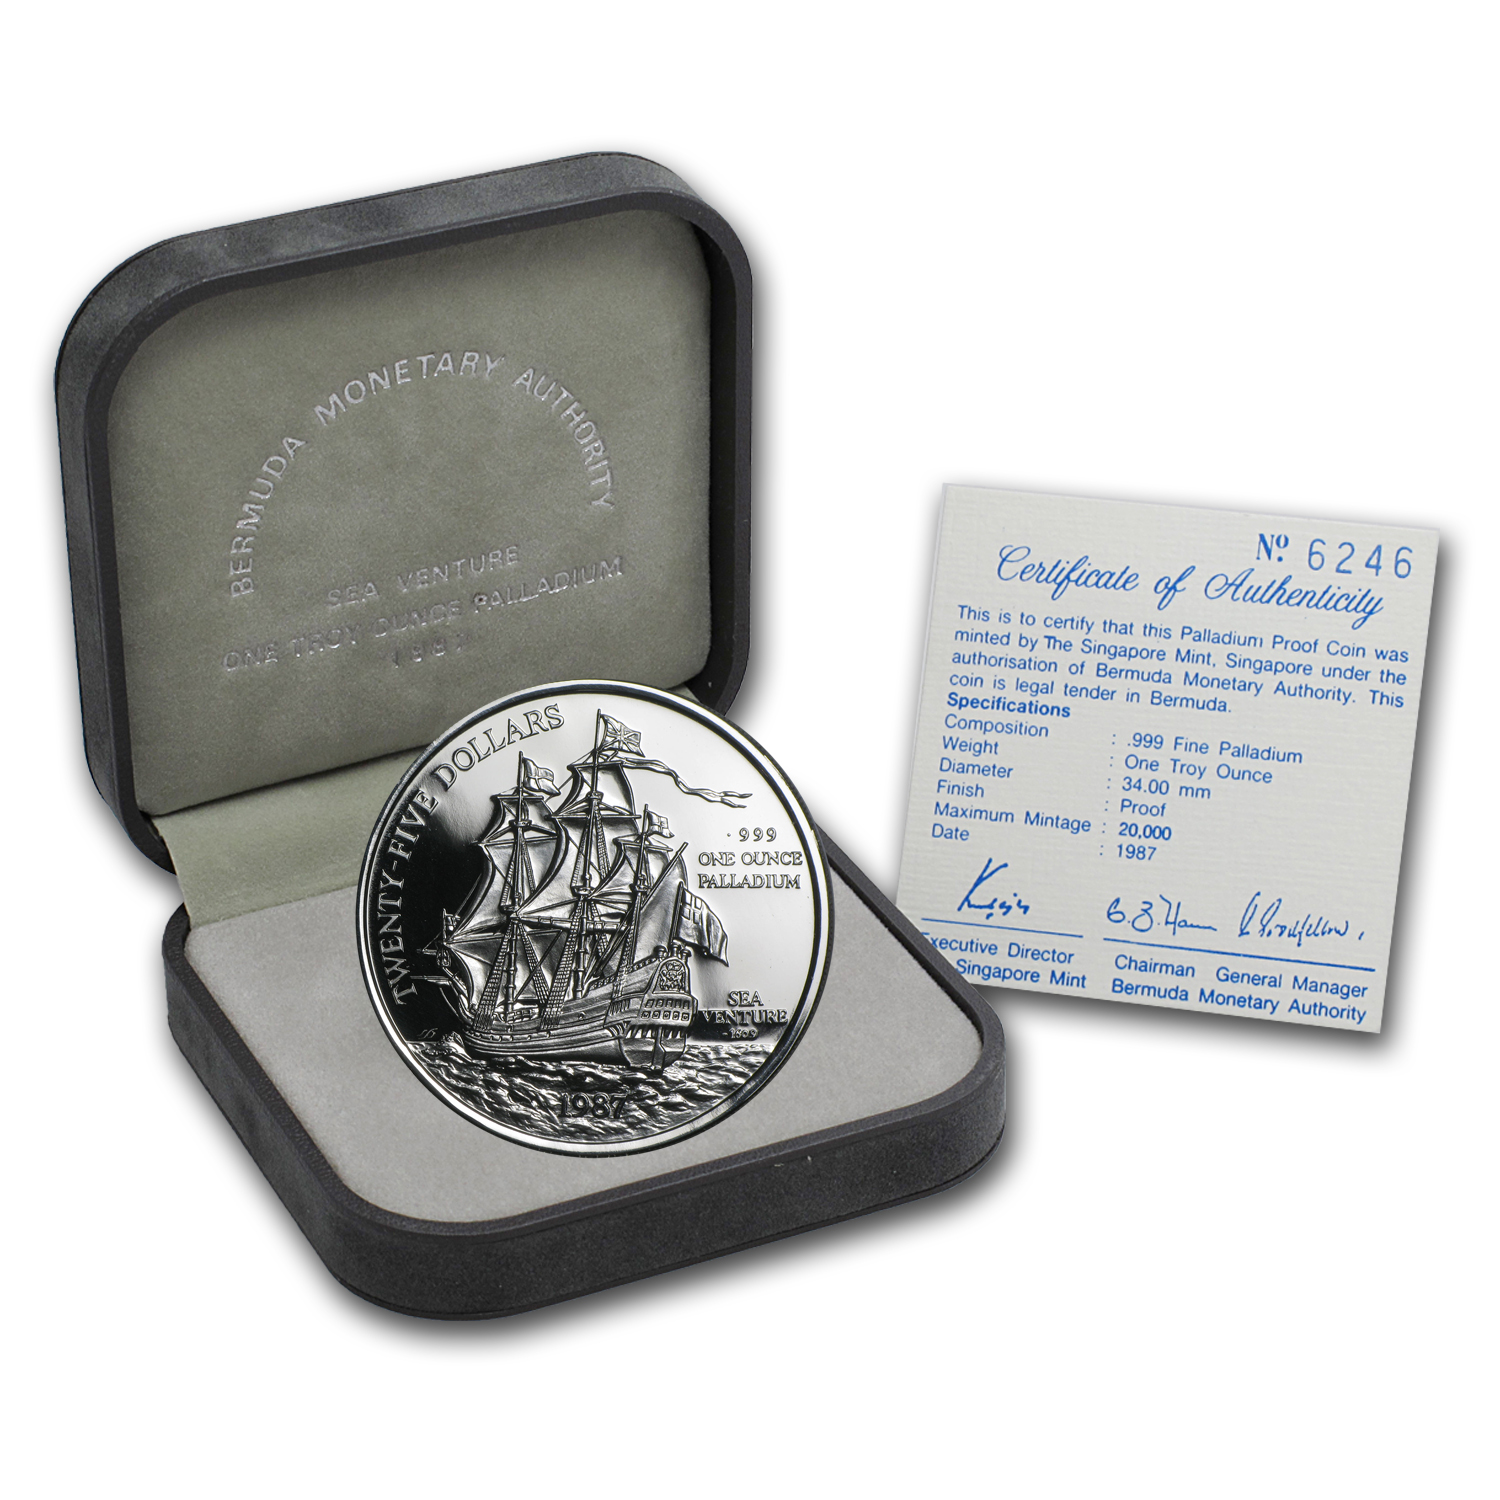 1987 Bermuda 1 oz Palladium Sea Venture Proof (w/Box & COA)